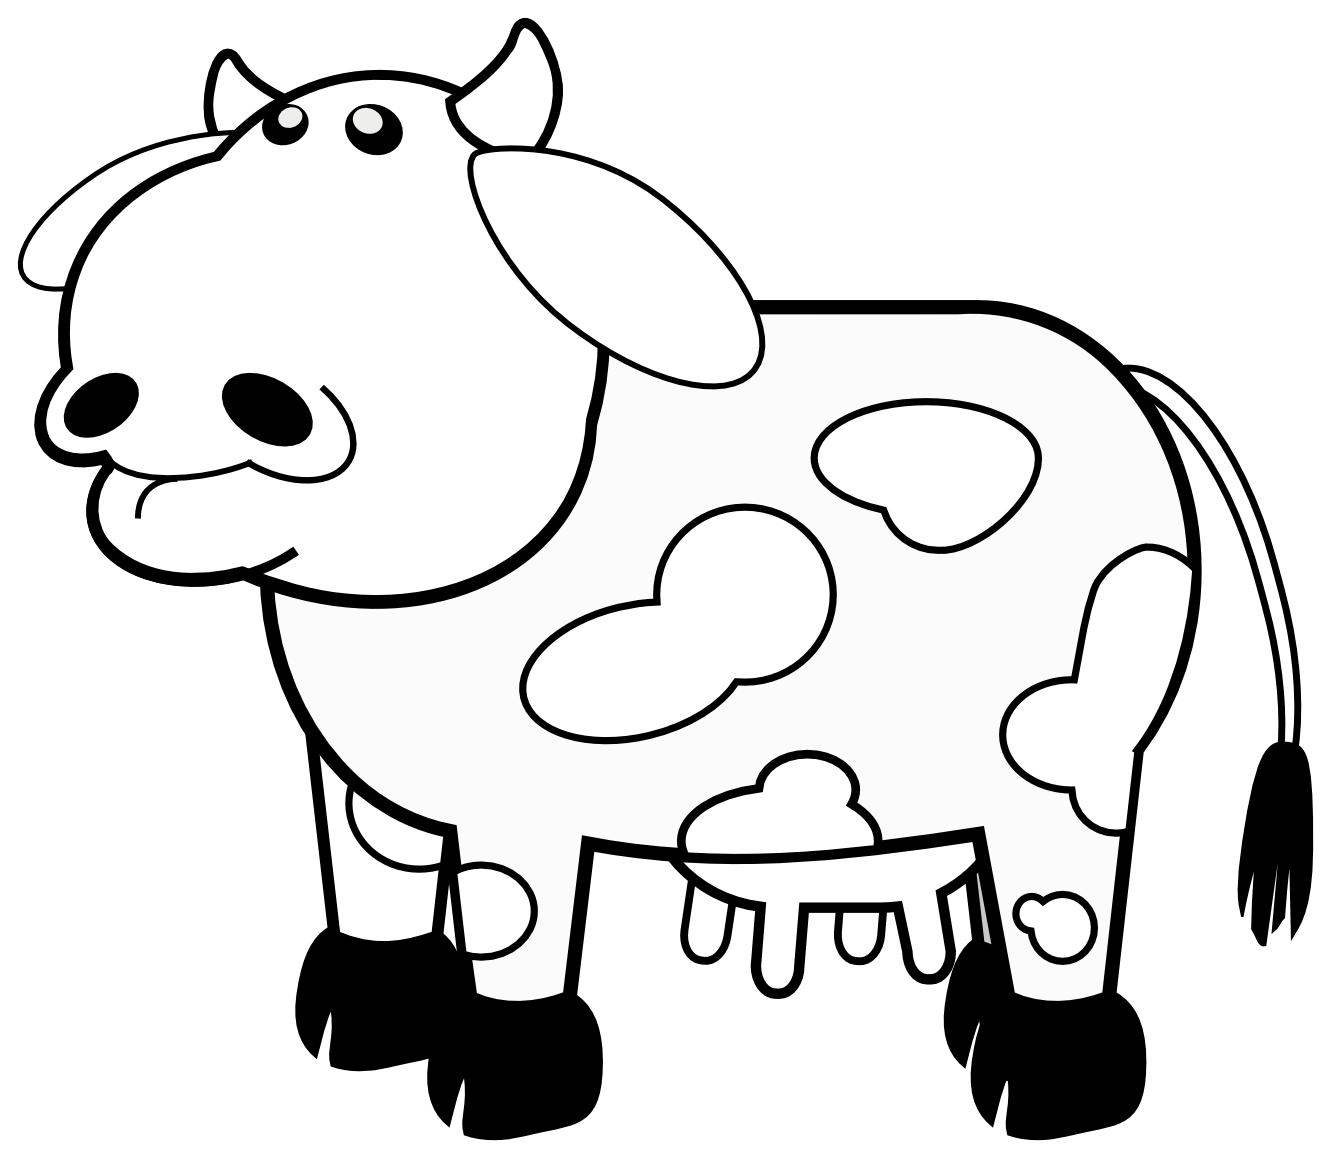 jpg free library Clipart black and white. Cow panda free images